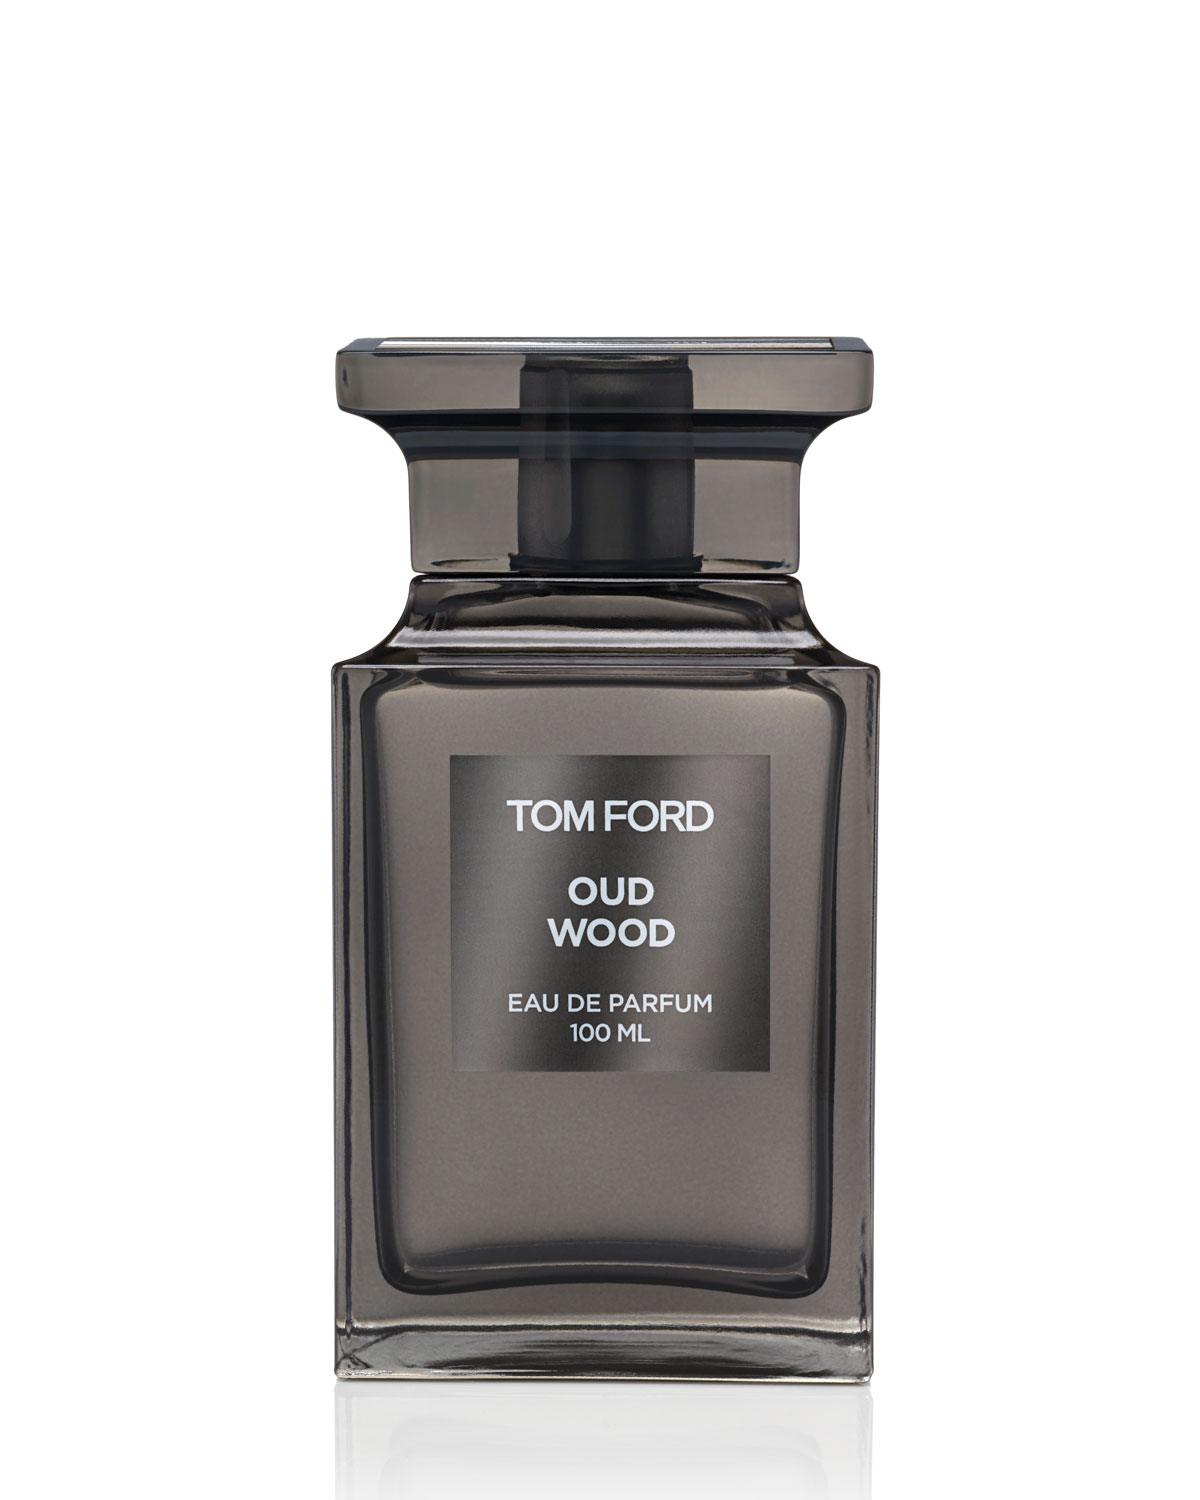 TOM FORD 3.4 oz. Oud Wood Eau De Parfum